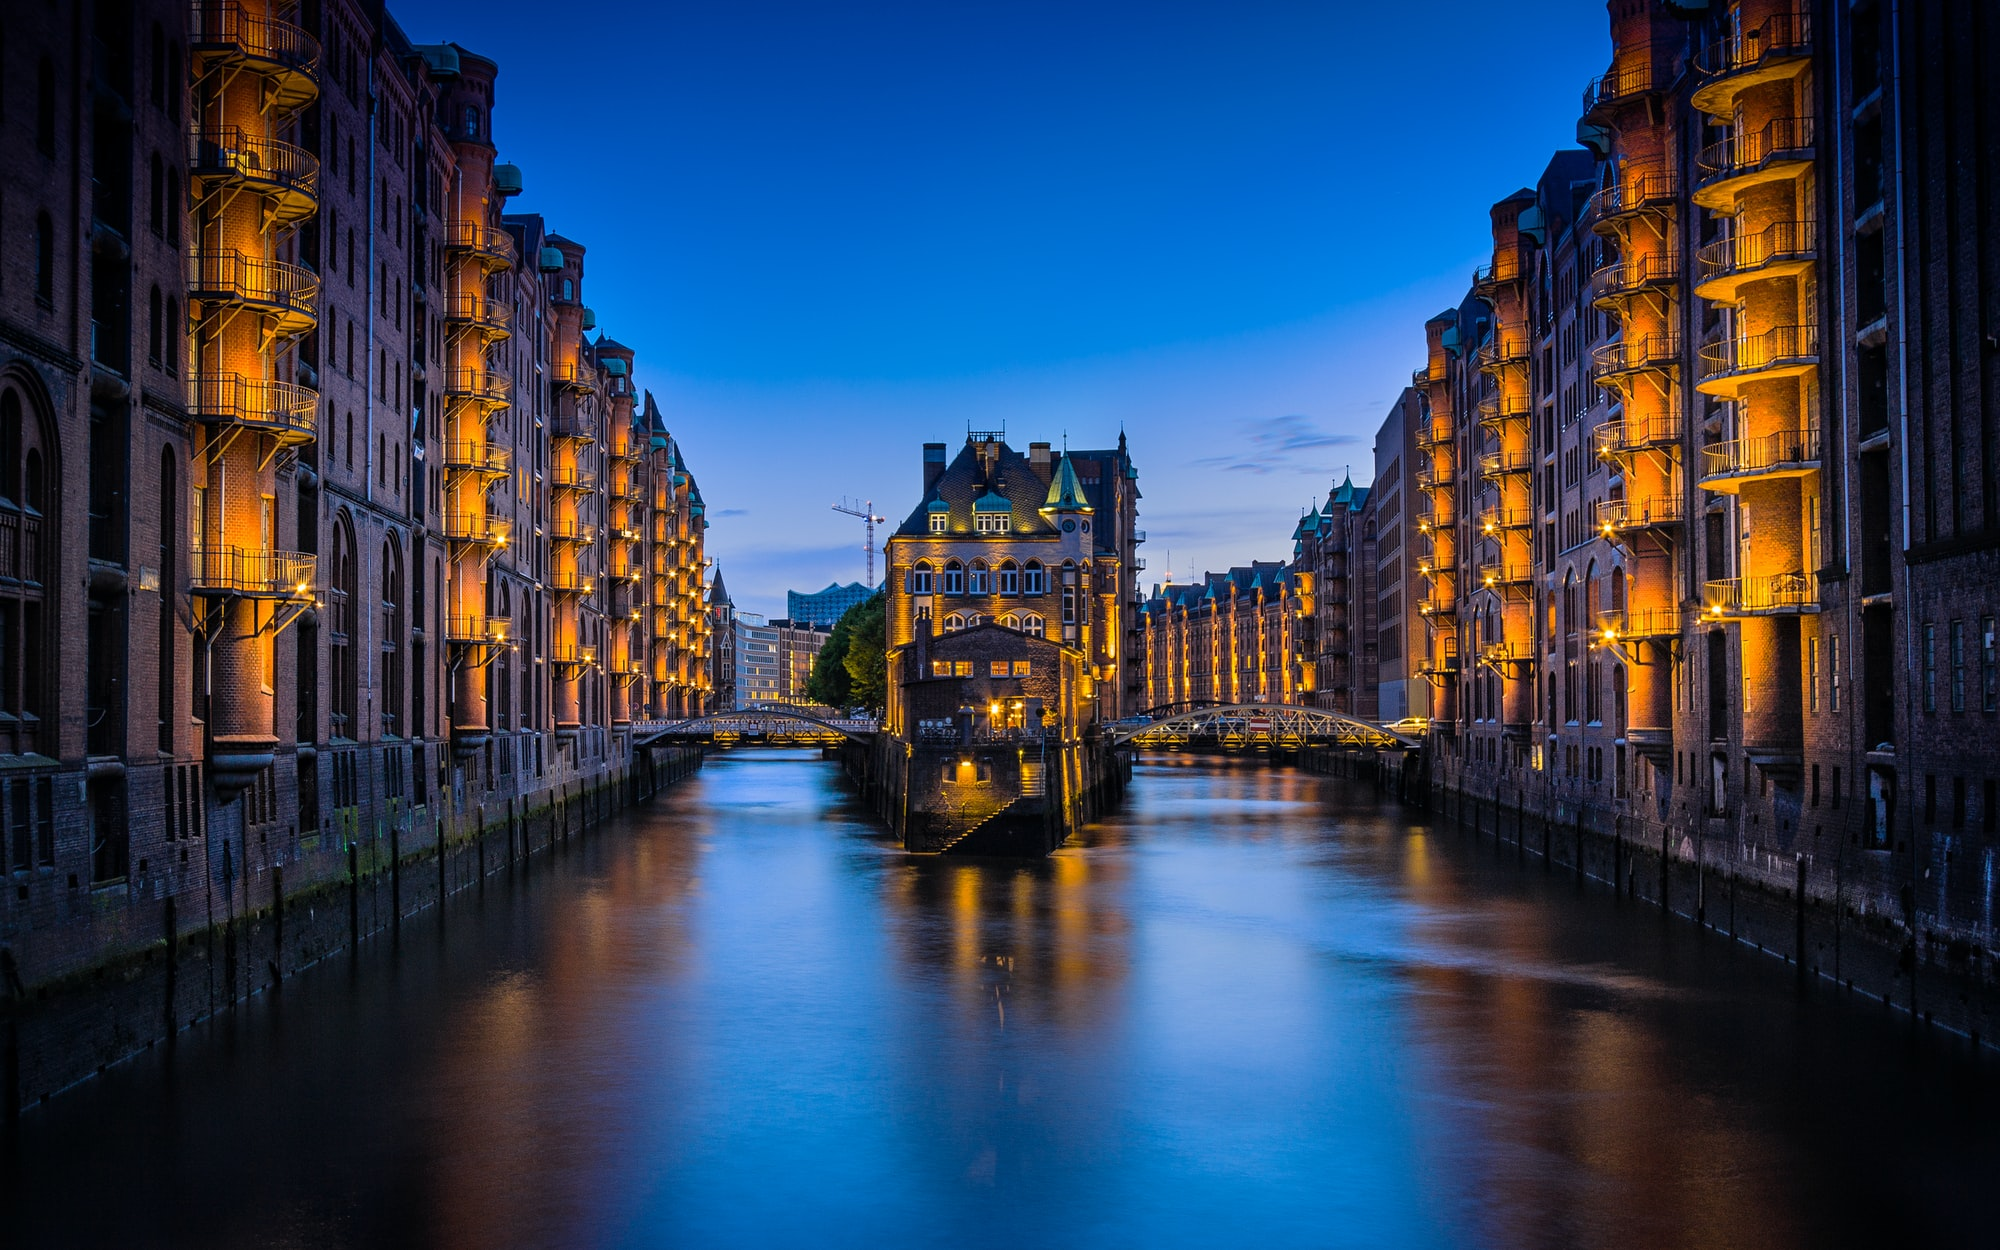 """This photo was taken in the """"Speicherstadt"""" District in Hamburg (Germany). On midday this place looks kind of boring but in the late evening, the lights go on and the place turns into a great photo spot."""